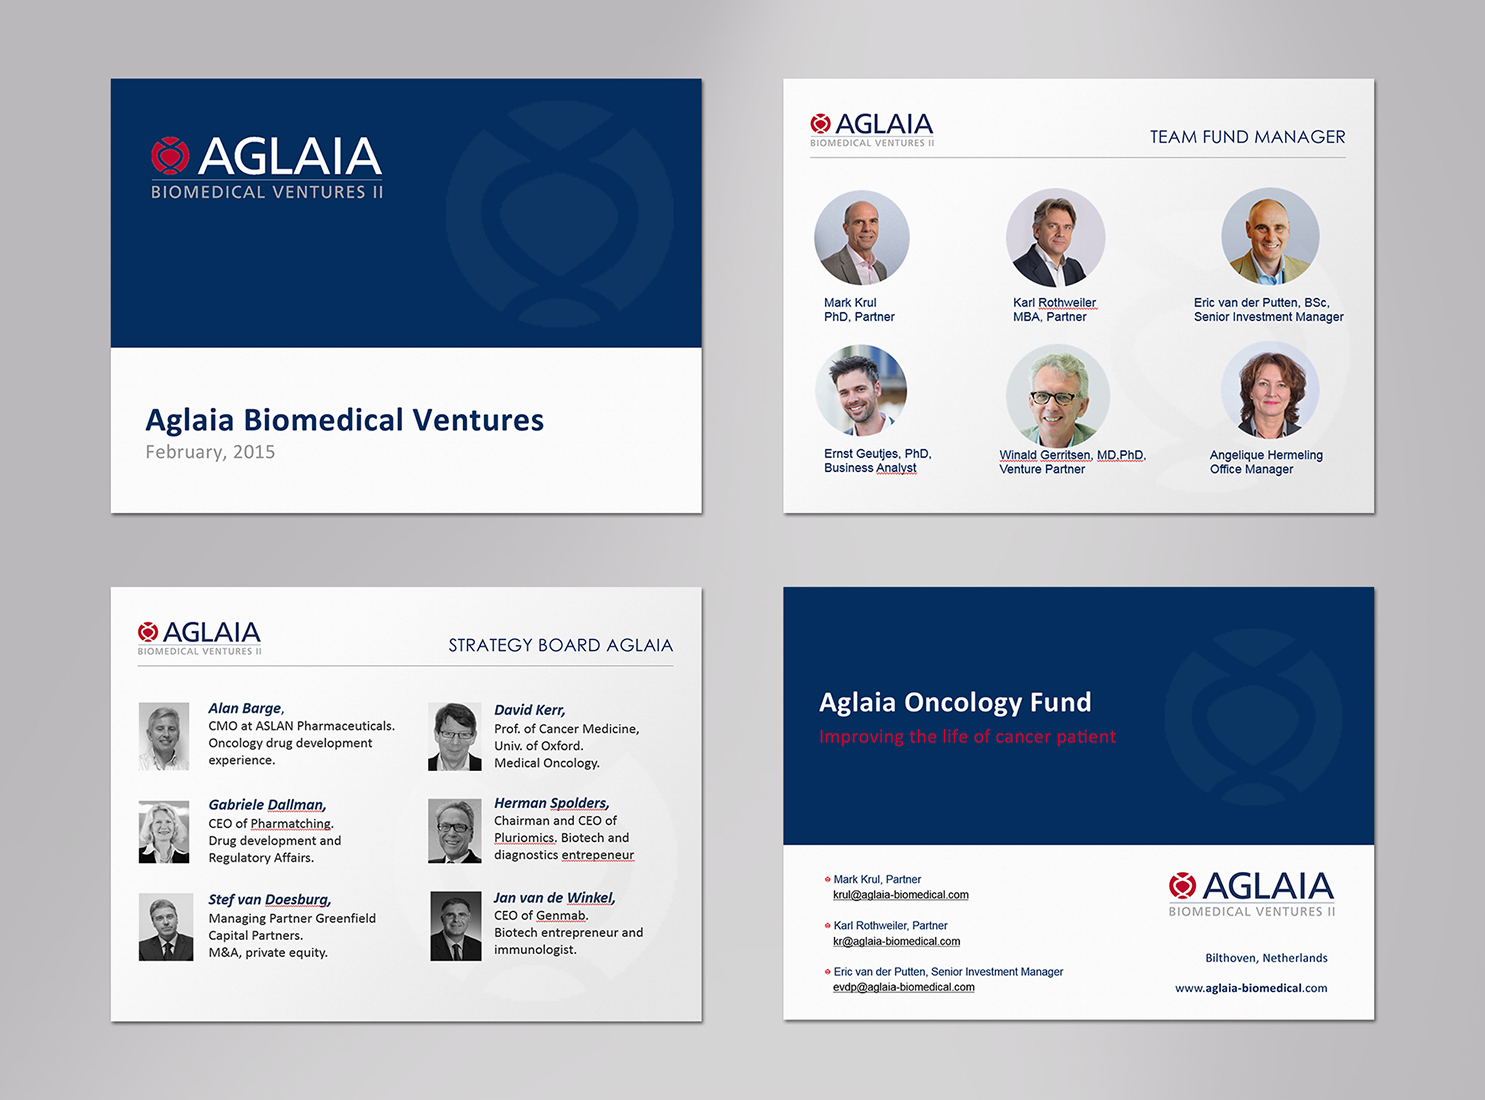 Elegant serious powerpoint design for aglaia biomedical ventures by powerpoint design by logodentity for biotech investment fund aglaia biomedical ventures needs powerpoint templates design toneelgroepblik Image collections